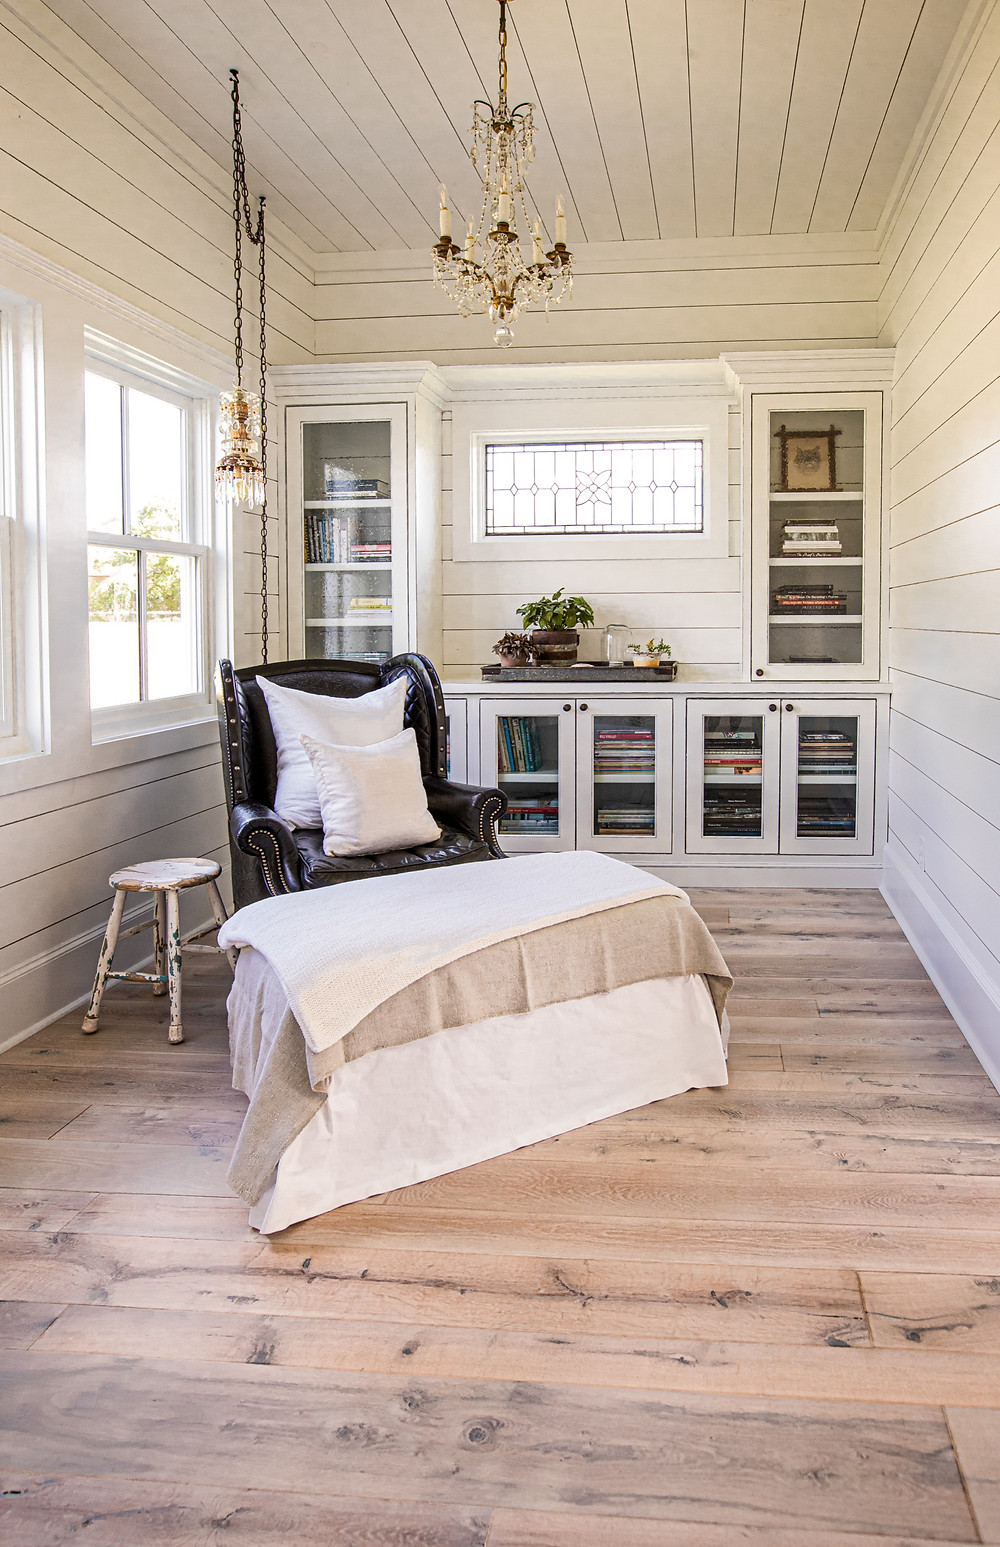 Salvaged Wide Plank Texas Post Oak hardwood floors in quaint sitting room Texas modern farmhouse